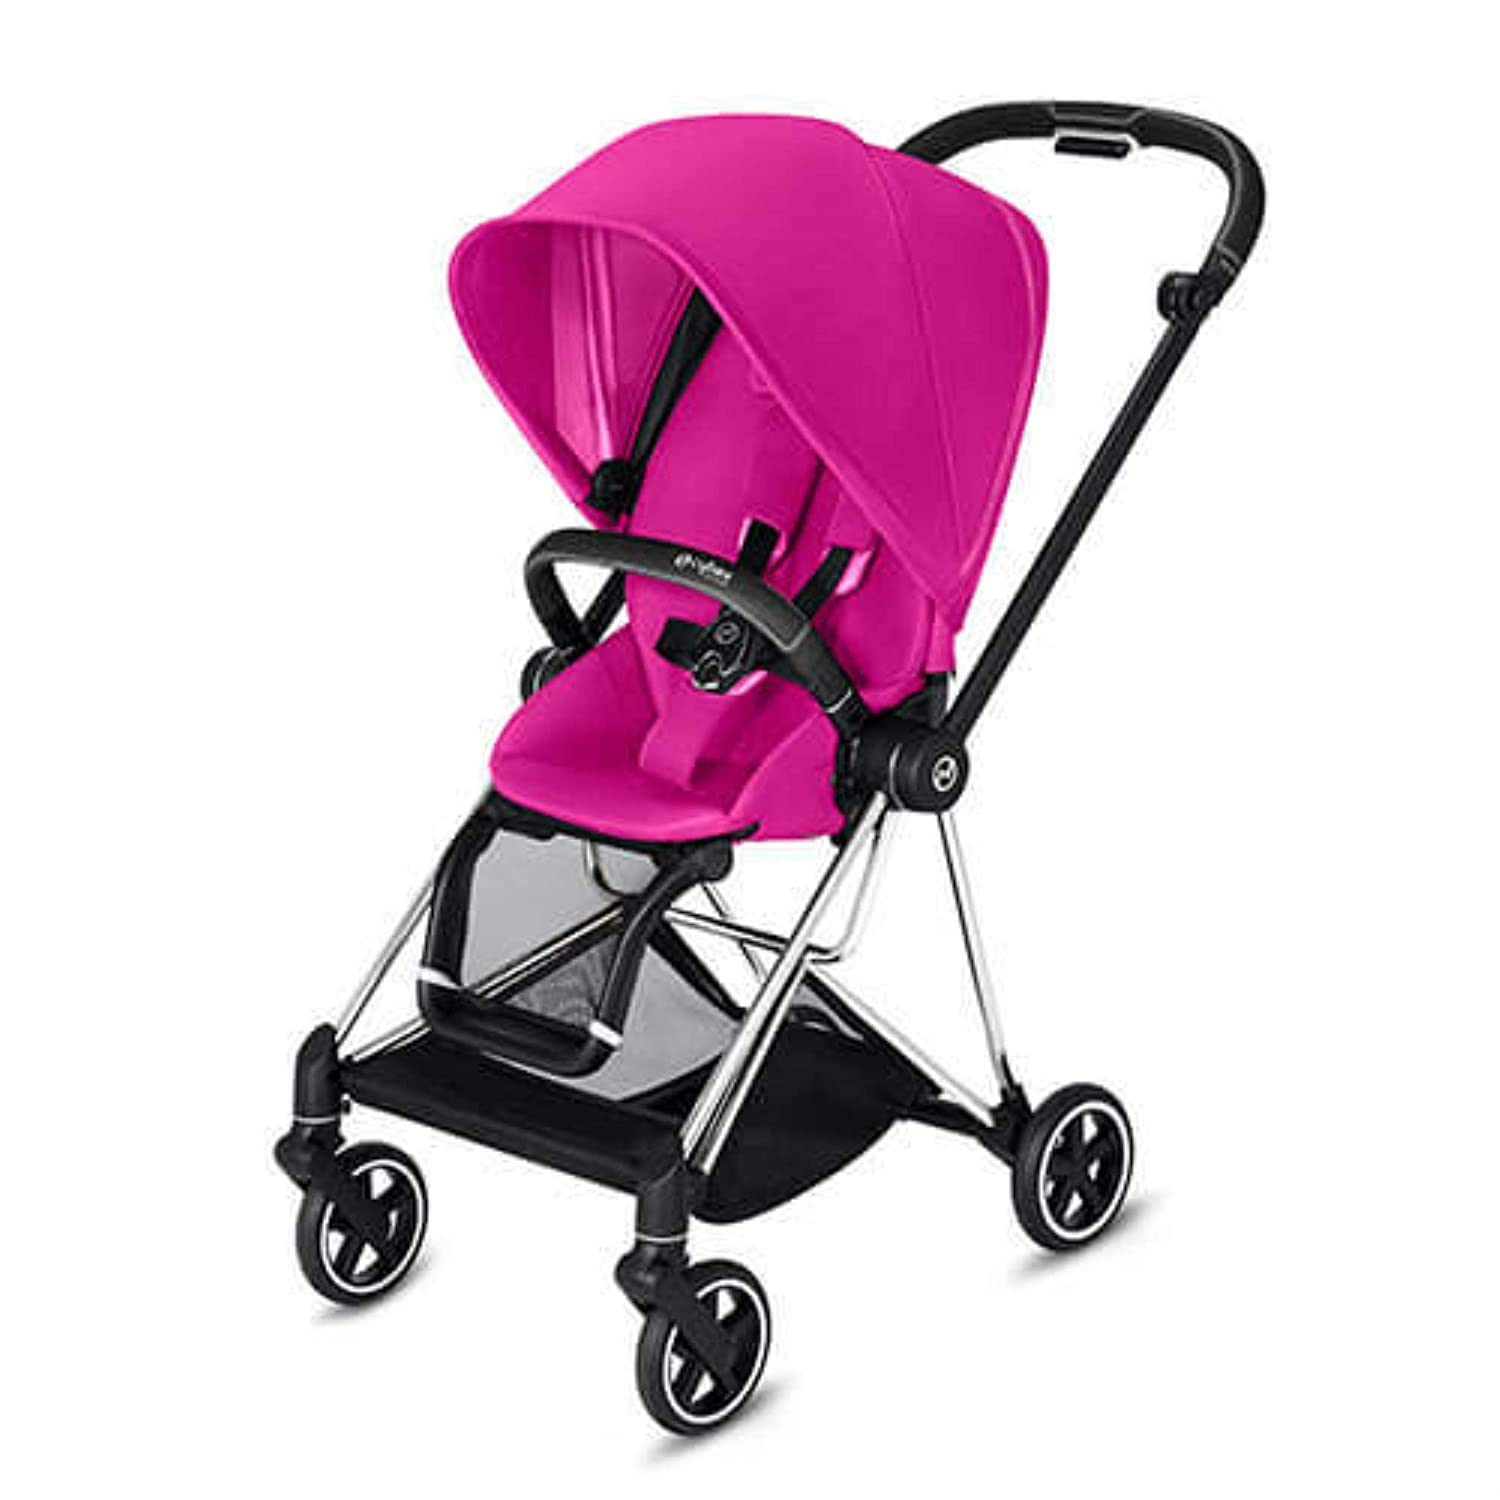 Cybex Mios 2 Complete Stroller, One-Hand Compact Fold, Reversible Seat, Smooth Ride All-Wheel Suspension, Extra Storage, Adjustable Leg Rest, XXL Sun Canopy, in Fancy Pink with Chrome/Black Frame